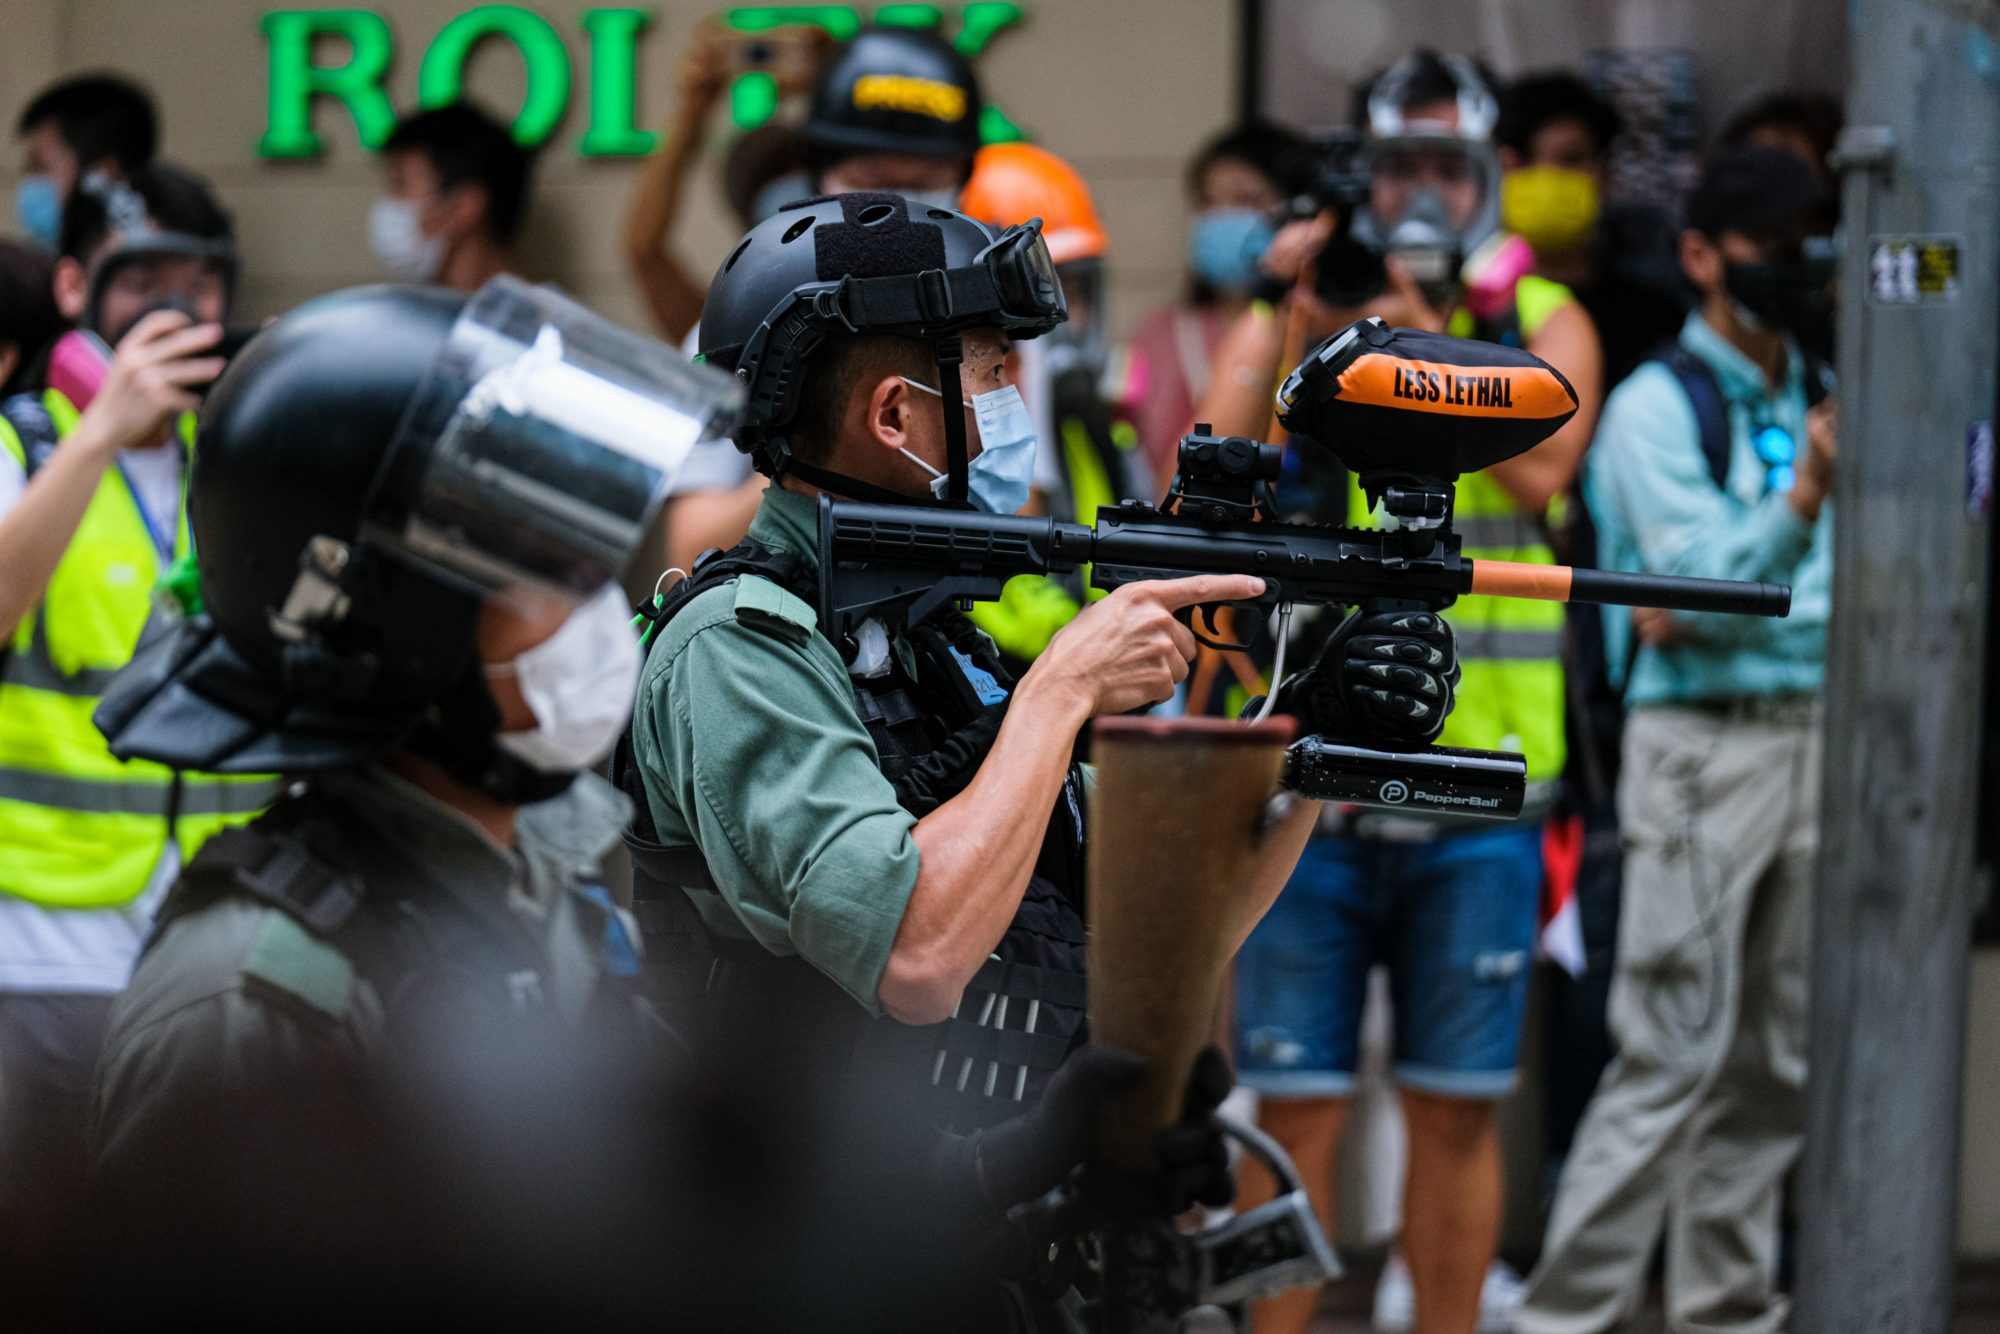 Hundreds arrested in Hong Kong protests as security law comes into effect - channel 4